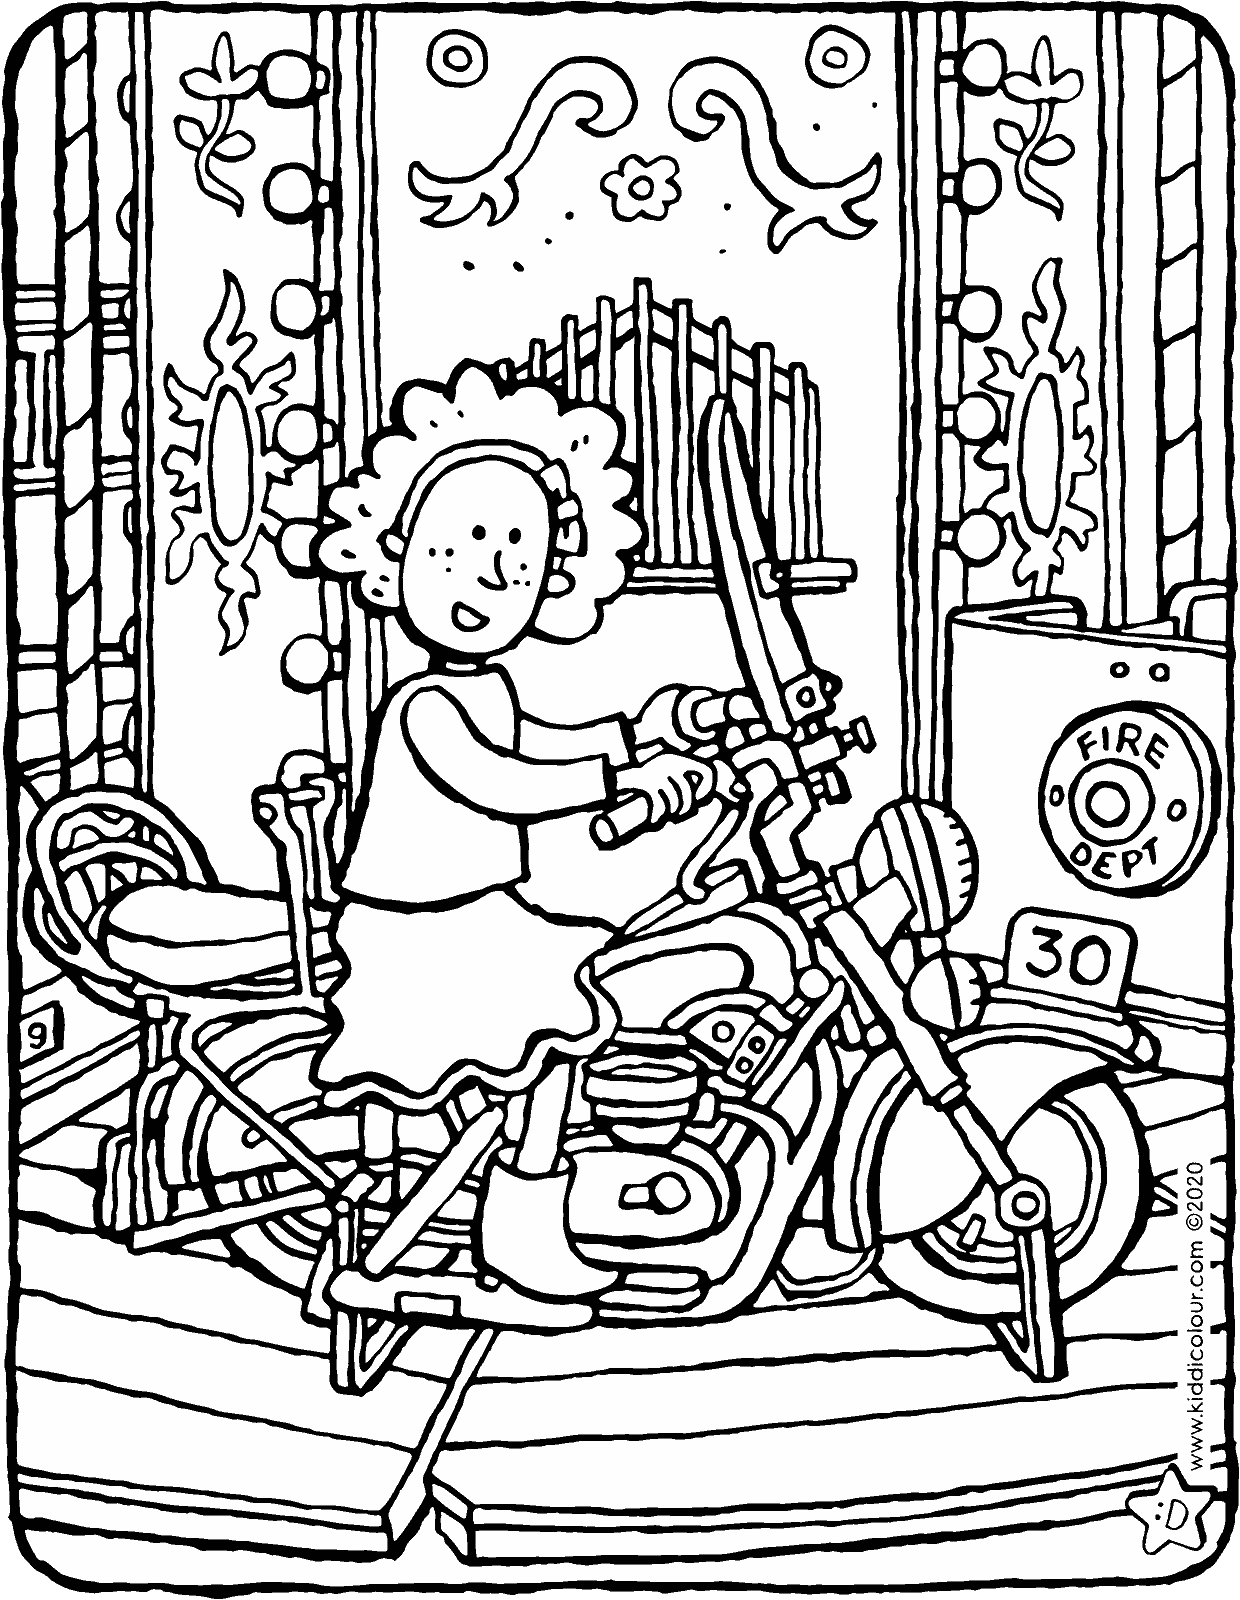 Lucy at the fair colouring page drawing picture